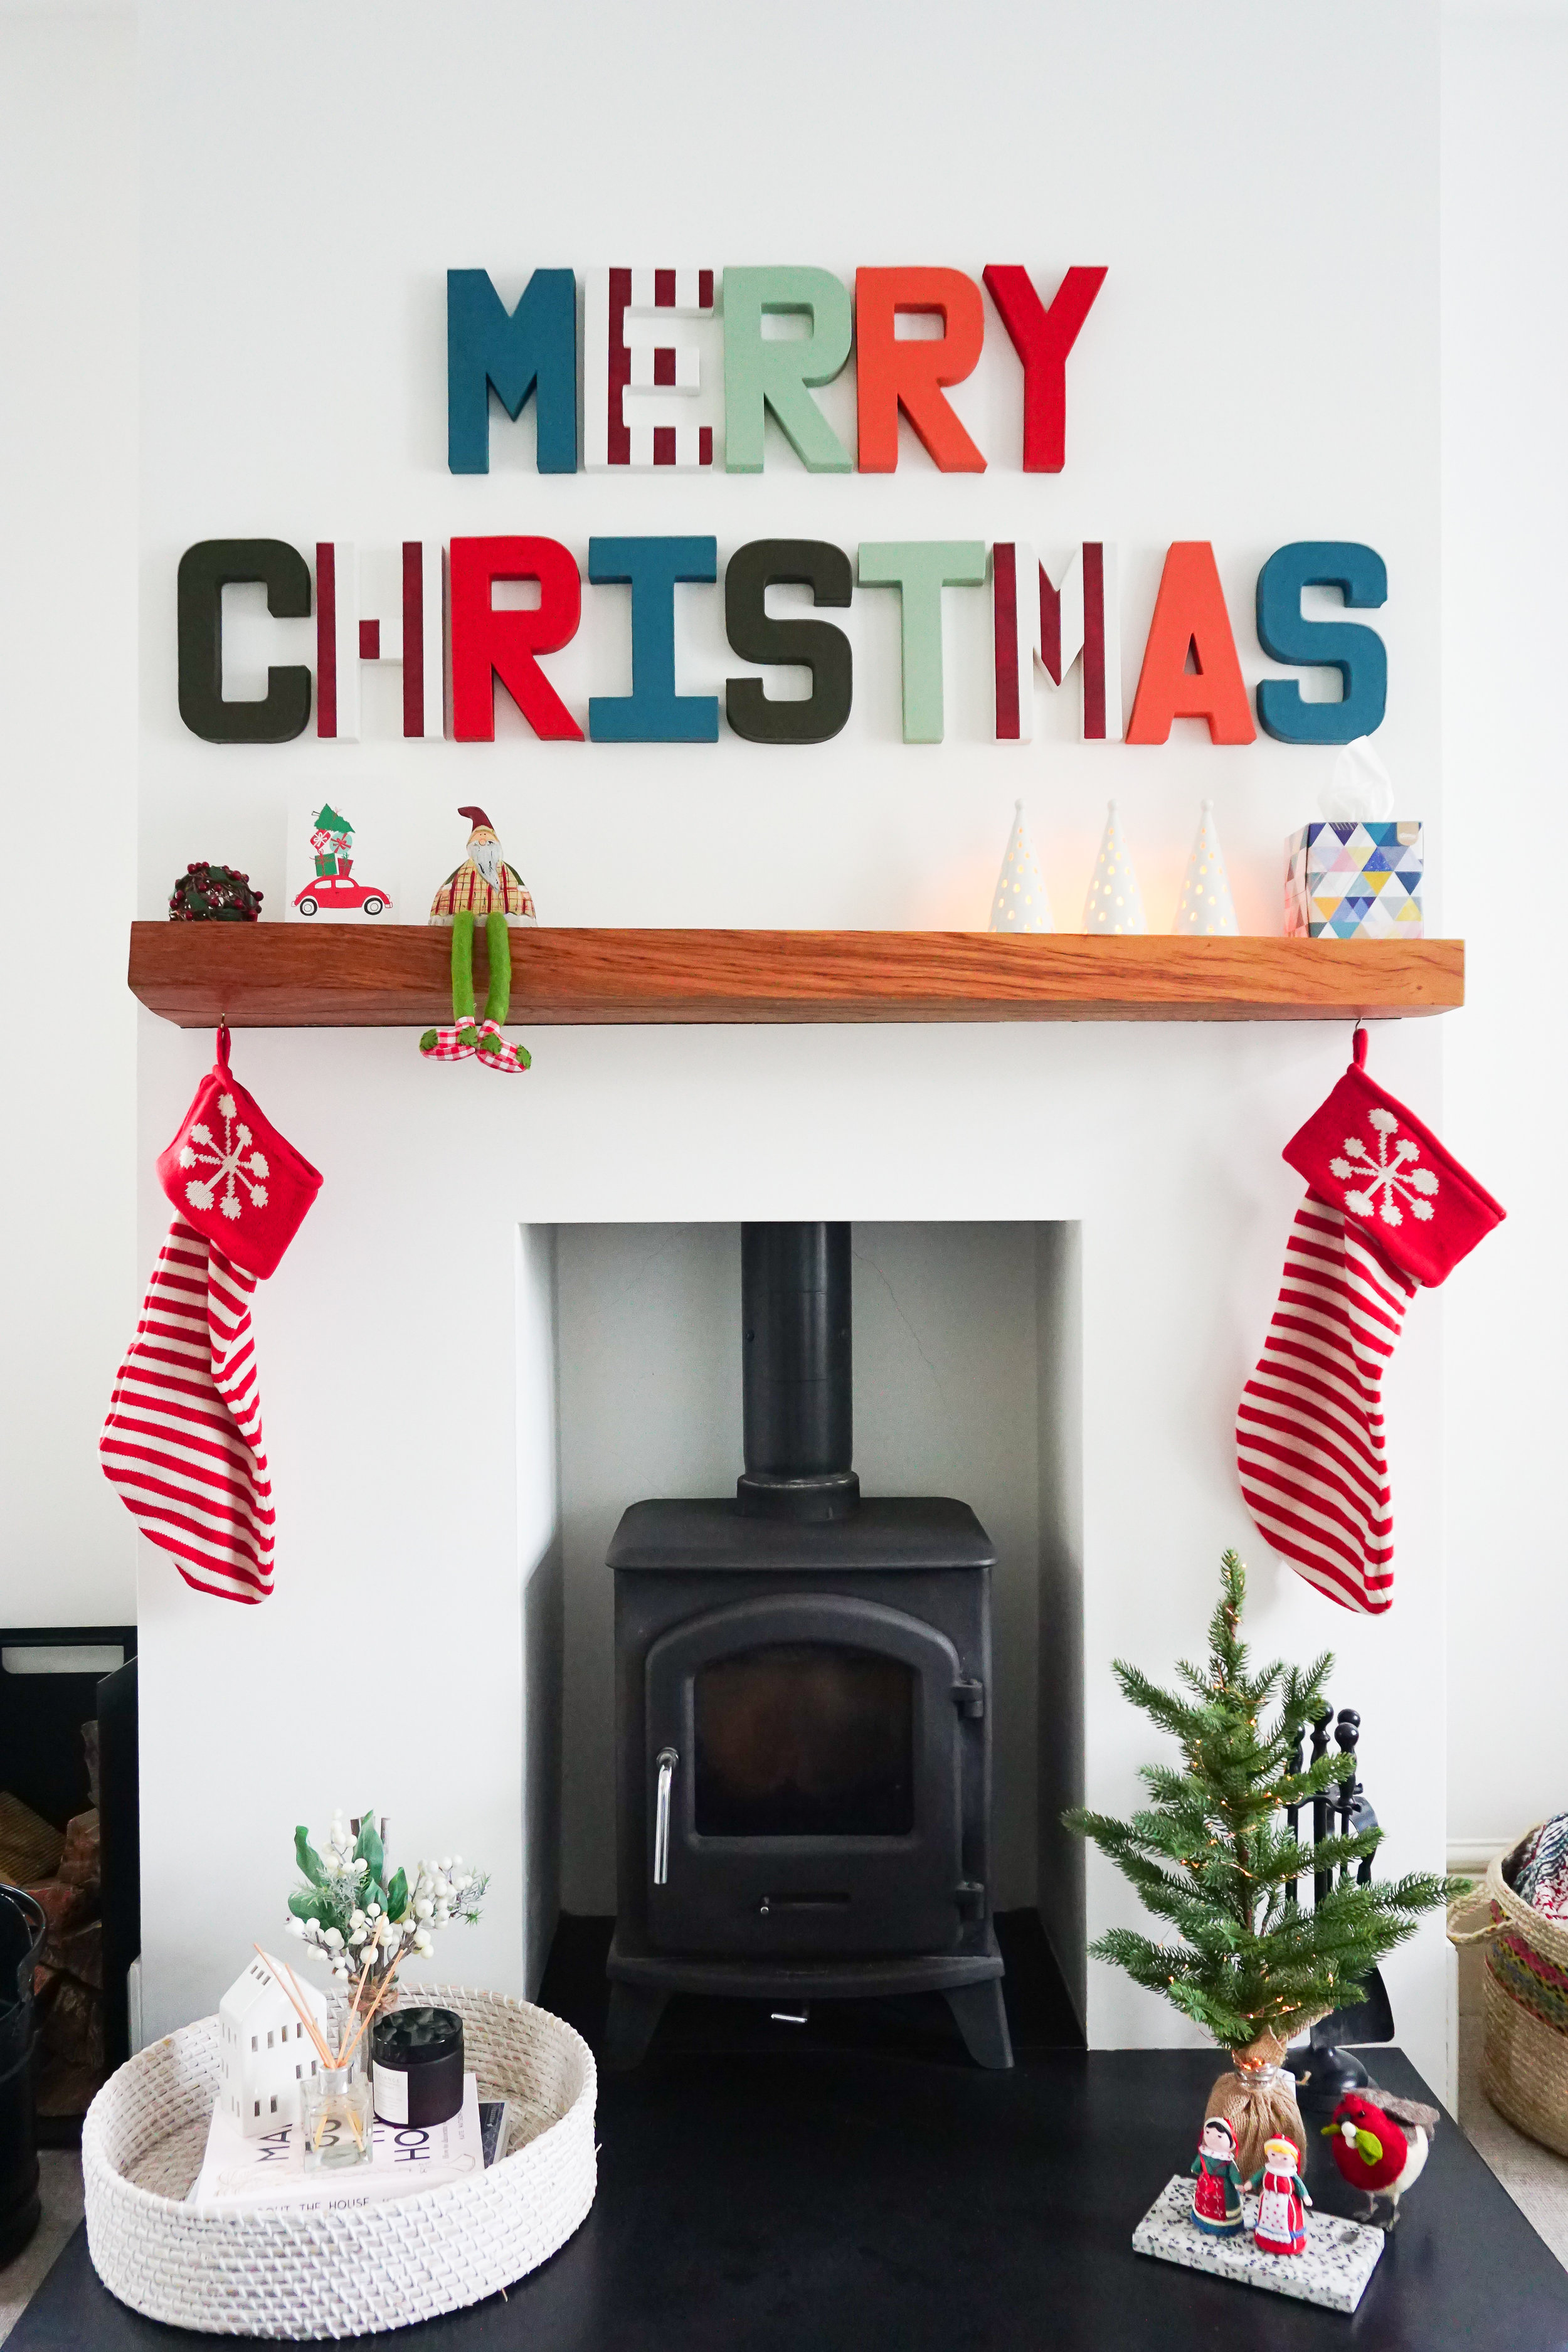 Getting your house festive this Christmas